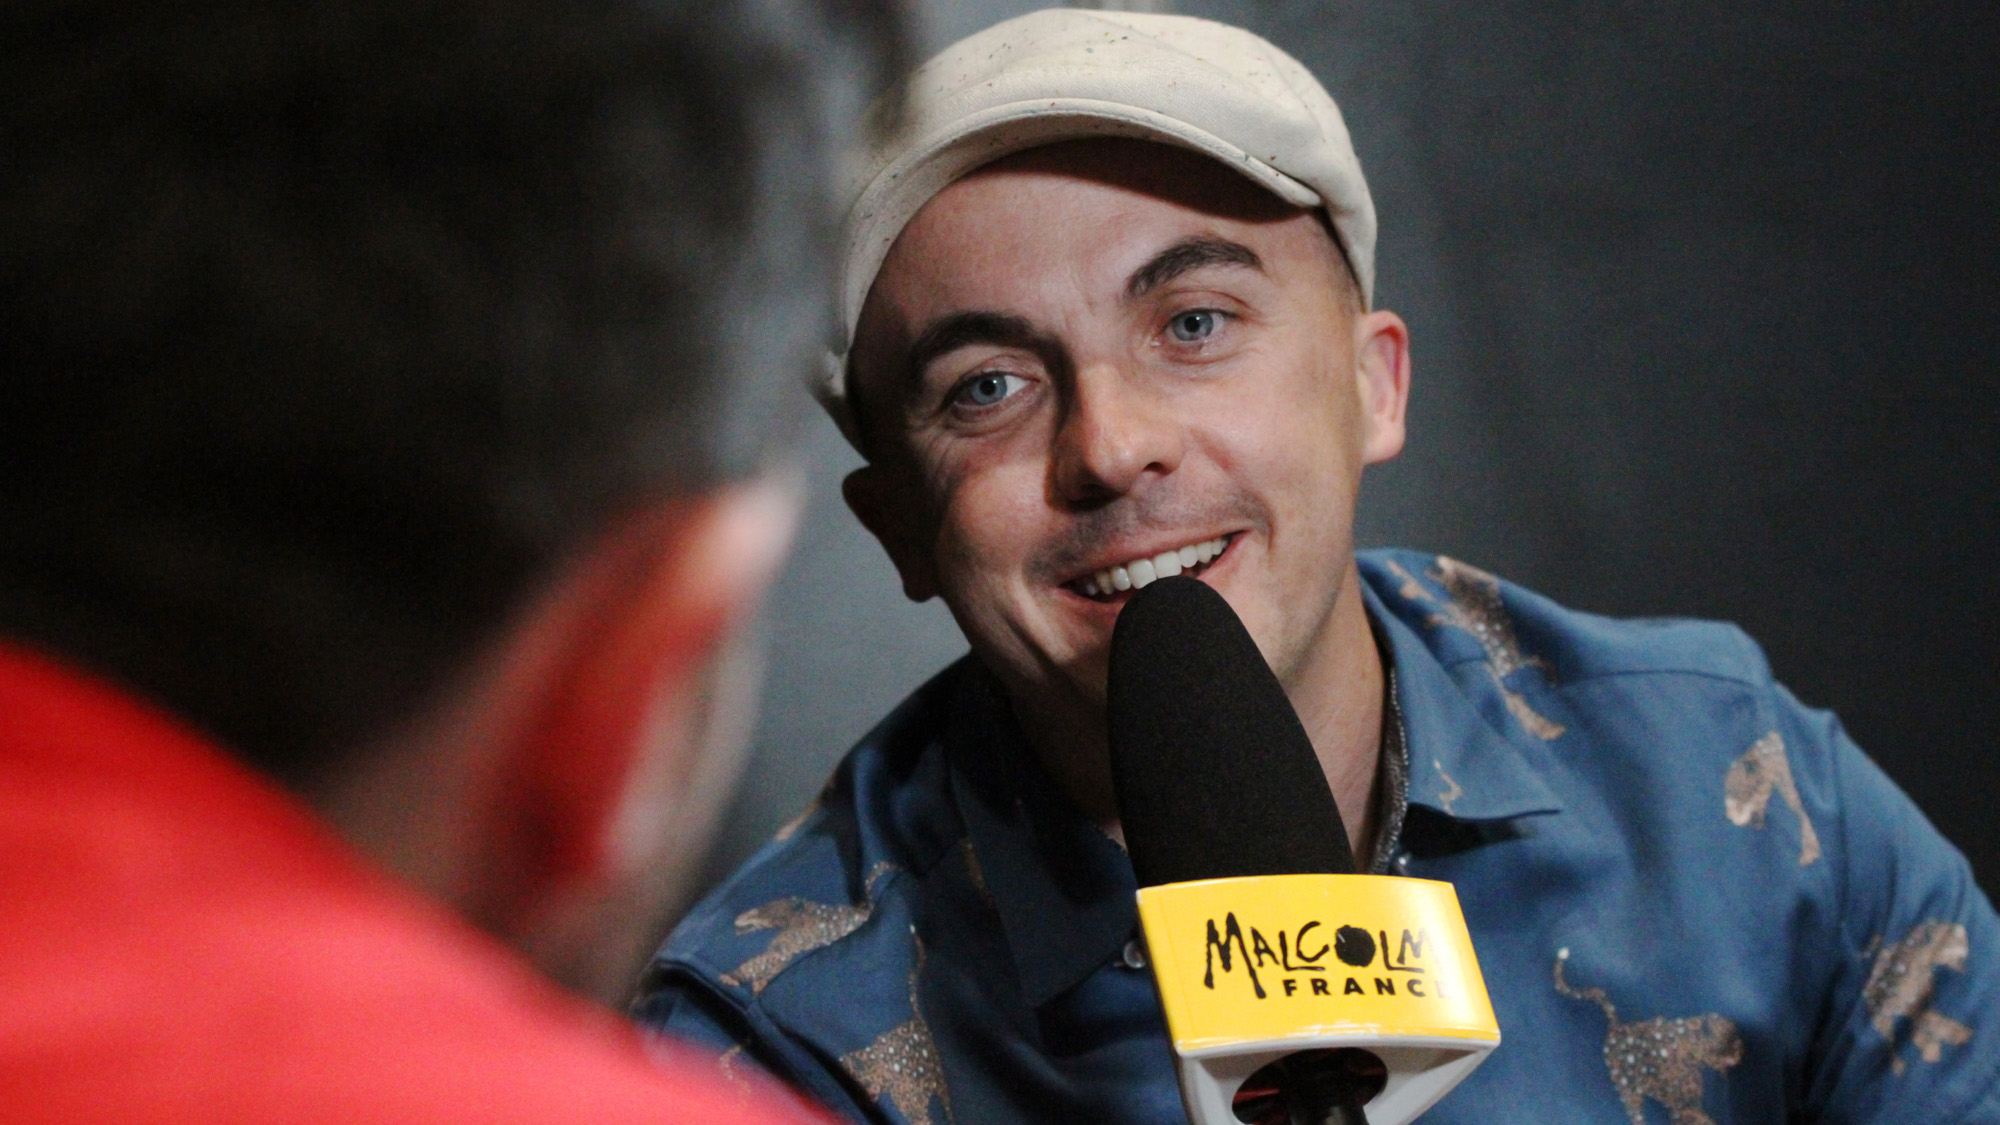 Interview « Avec qui… » avec Frankie Muniz